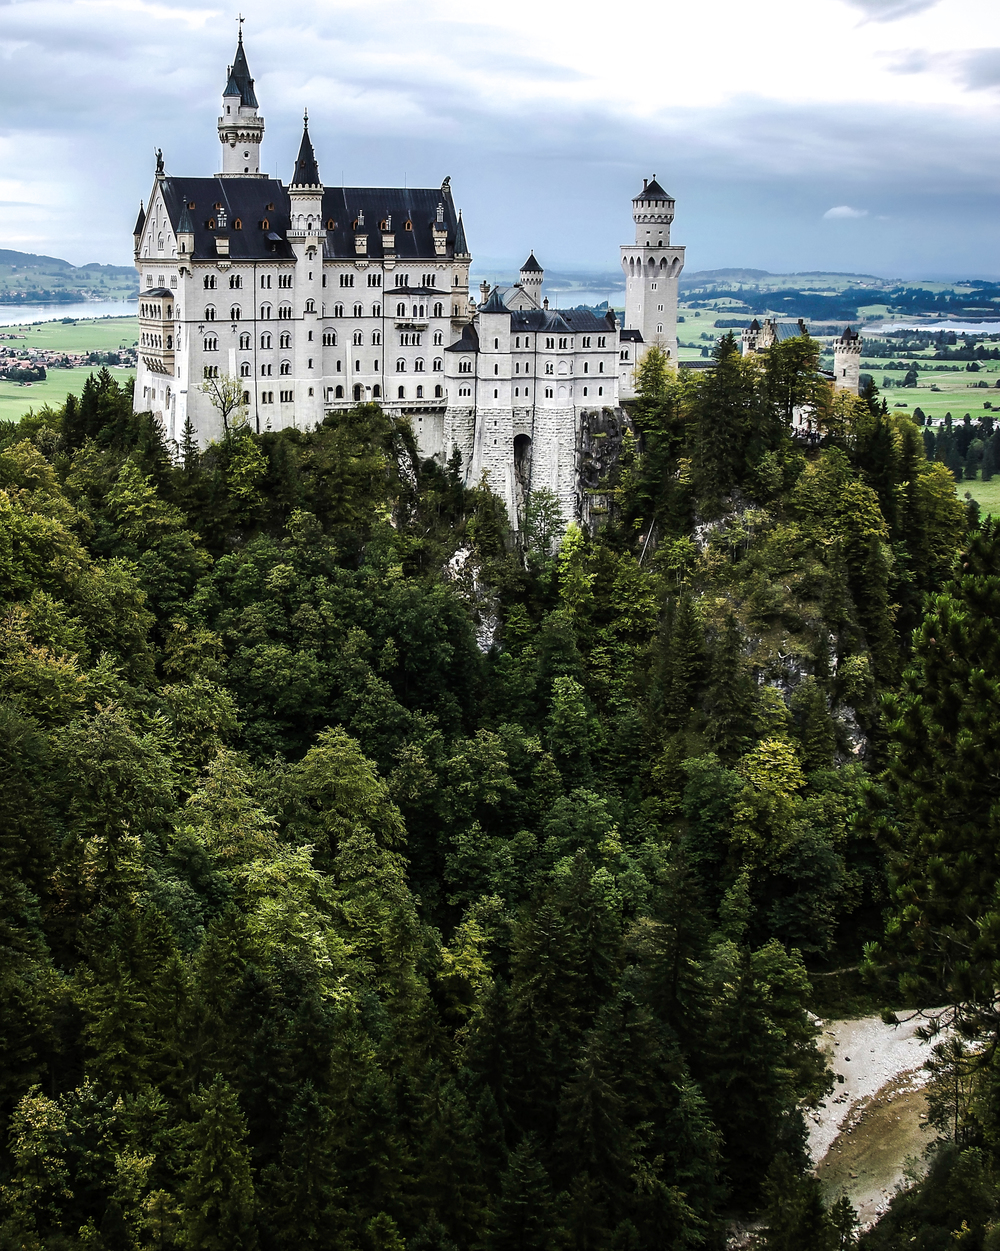 German Fairytale - Neuschwanstein Castle (Germany)